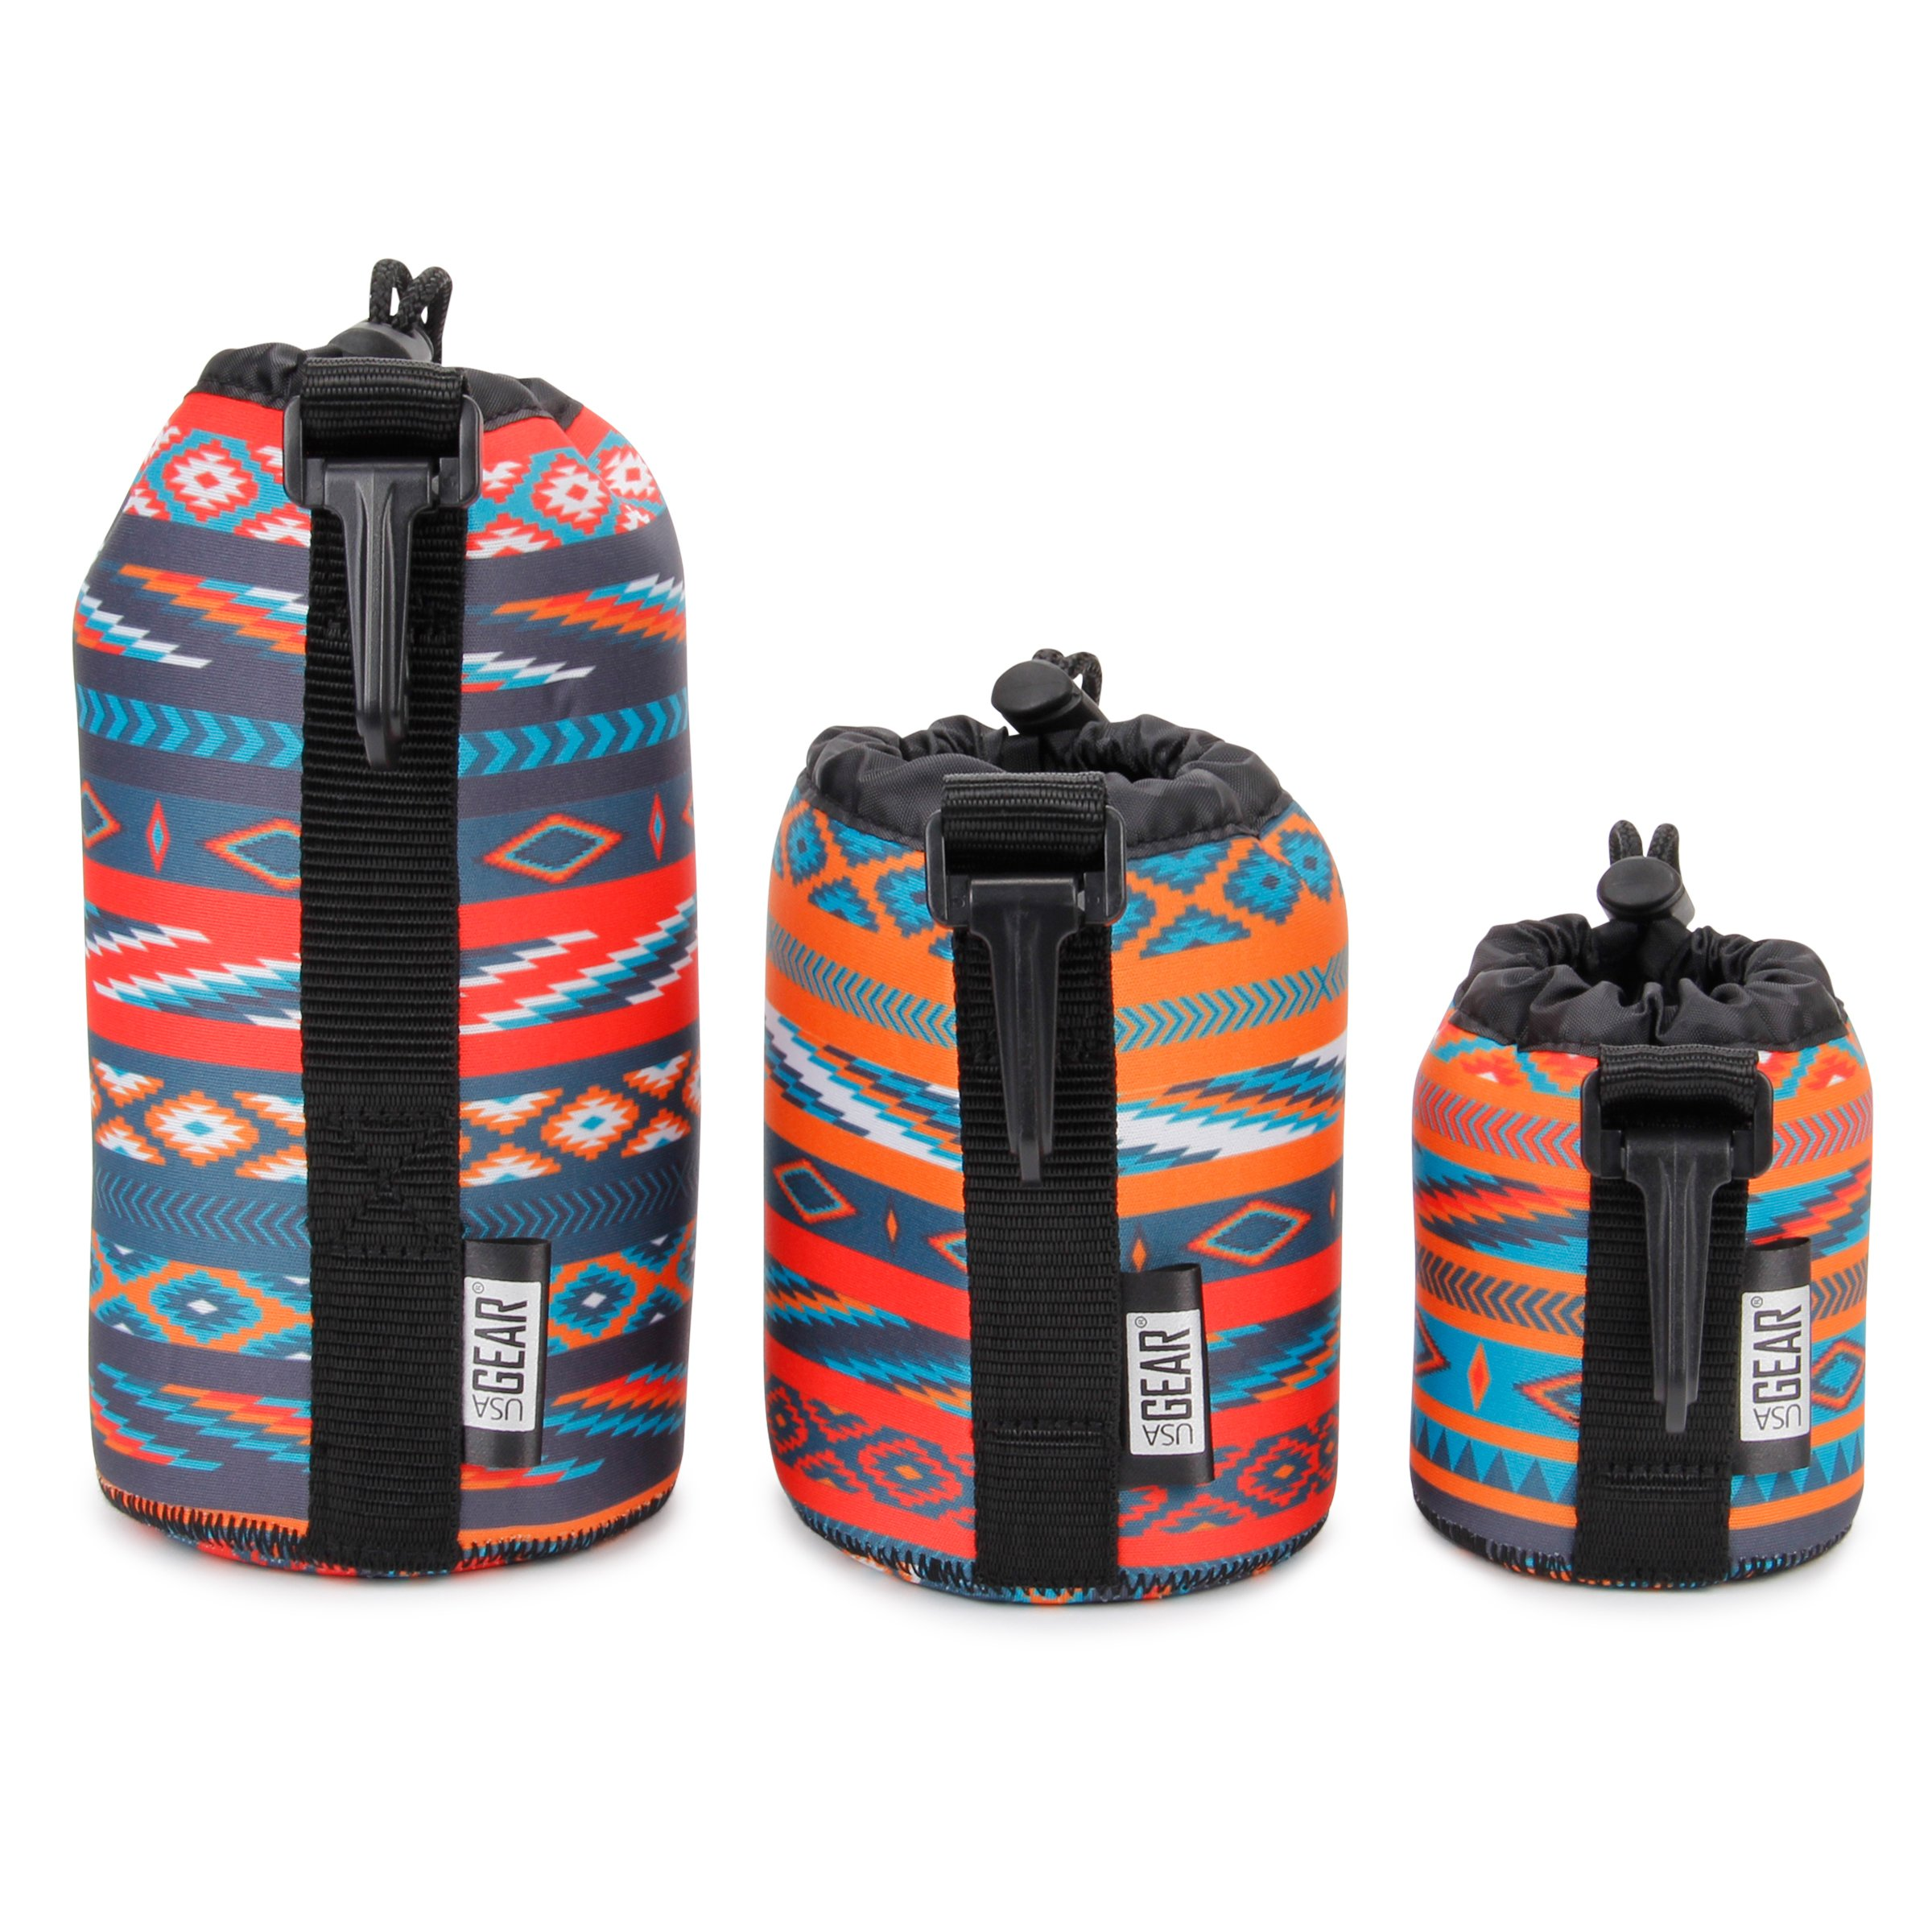 USA Gear FlexARMOR Protective Neoprene Lens Case Pouch Set 3-Pack (Southwest) Small, Medium and Large Cases Hold Lenses up to 70-300mm with Drawstring Opening, Attached Clip, Reinforced Belt Loop by USA Gear